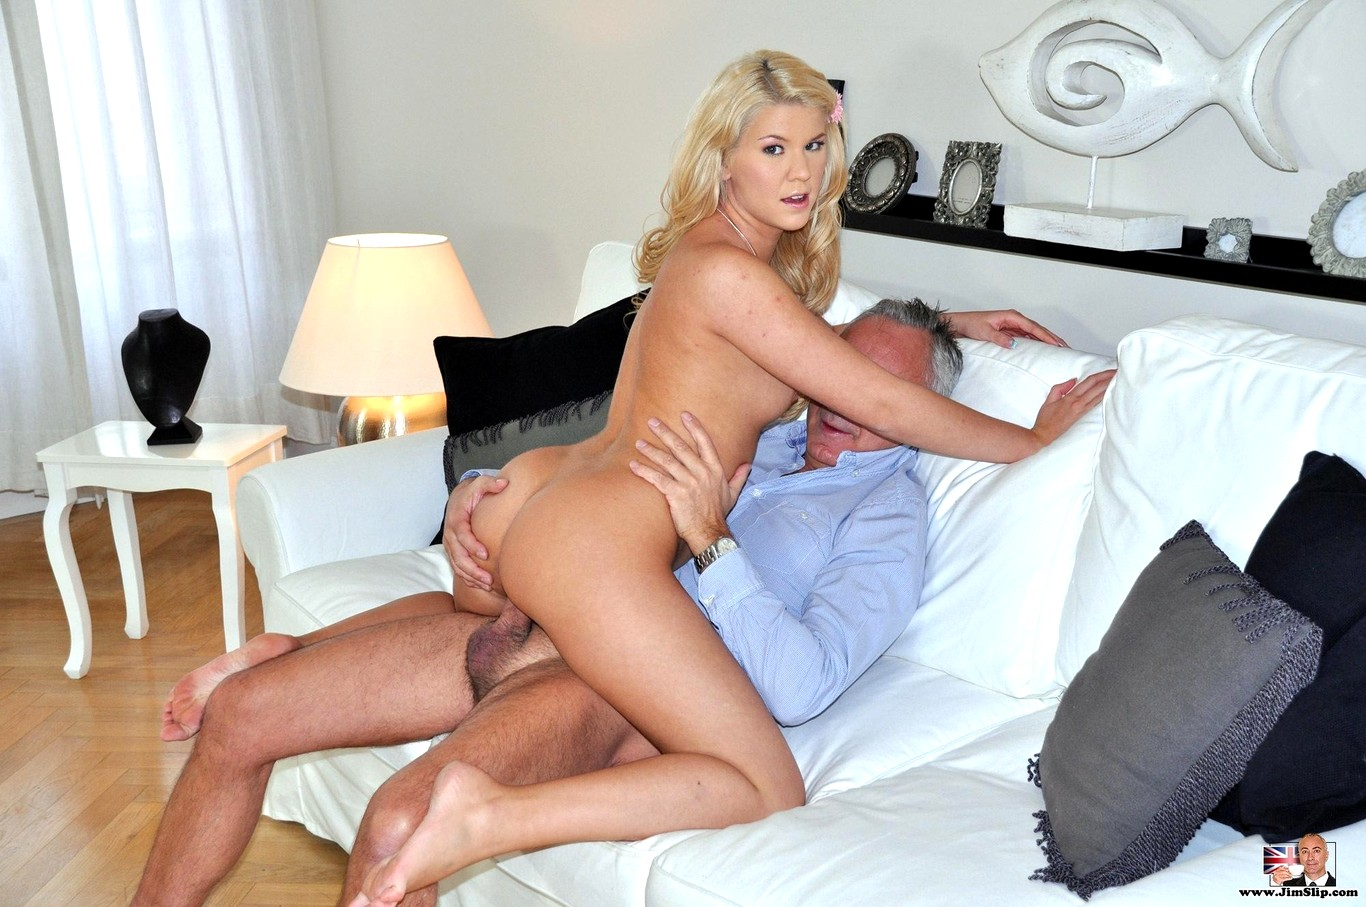 Blonde Milf Matures Seduce Young Guy Compilation Free Pics